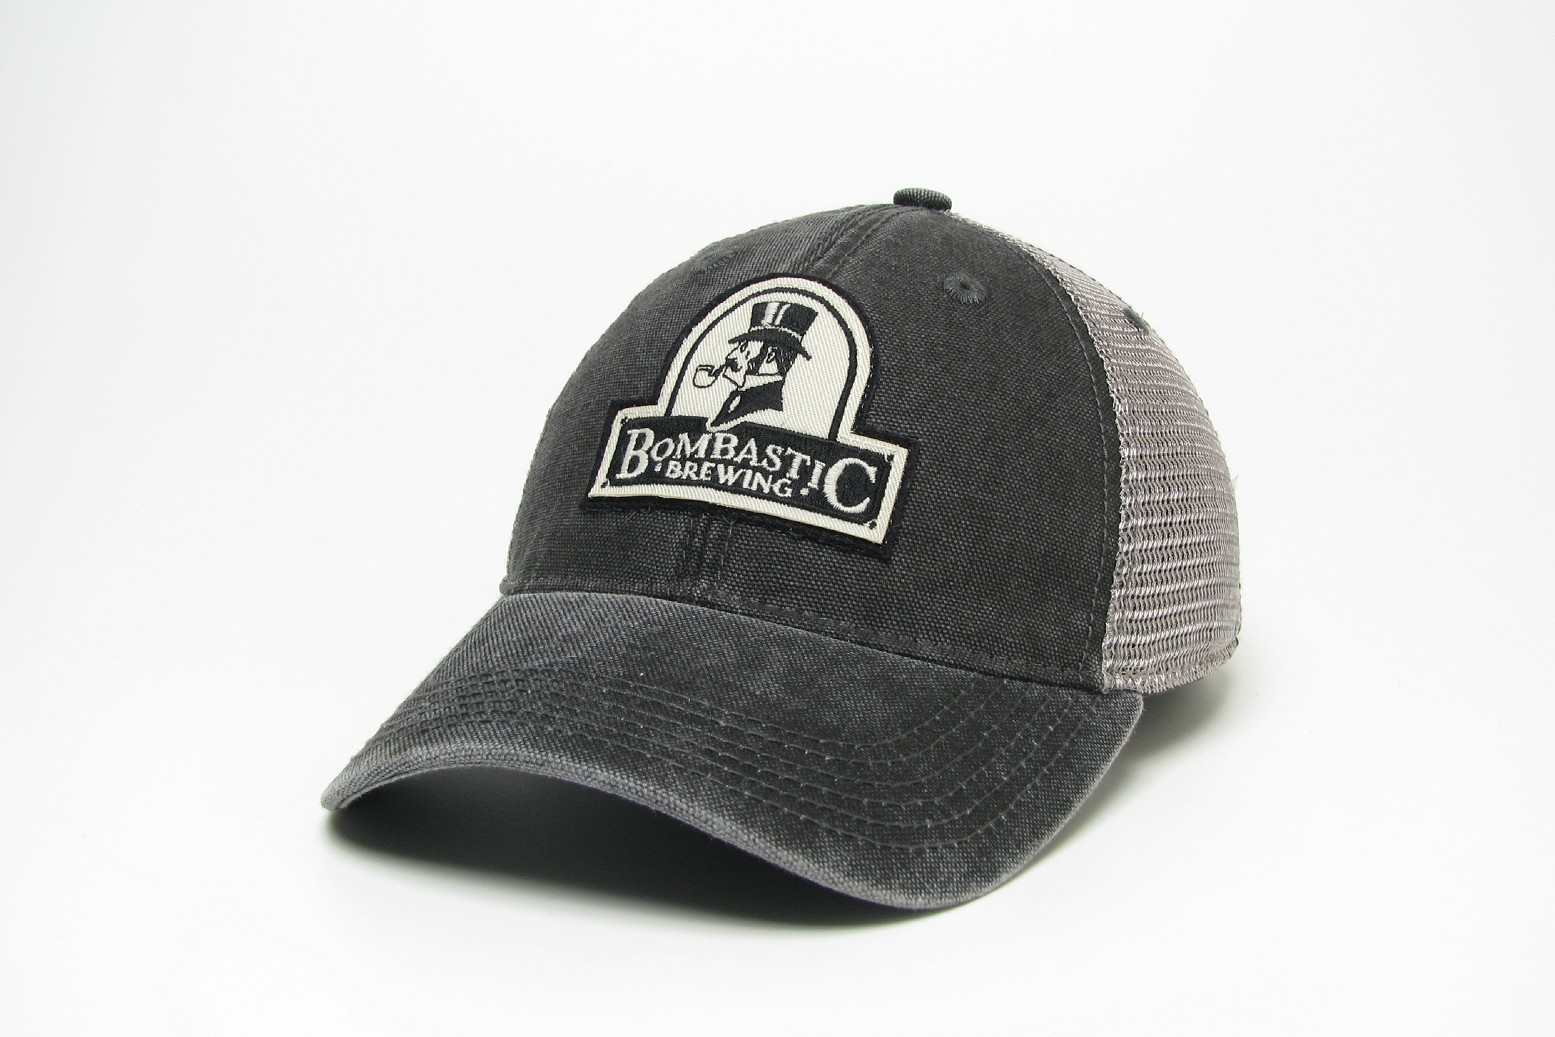 be6a176f76a2d Bombastic Trucker Hat - Bombastic Brewing